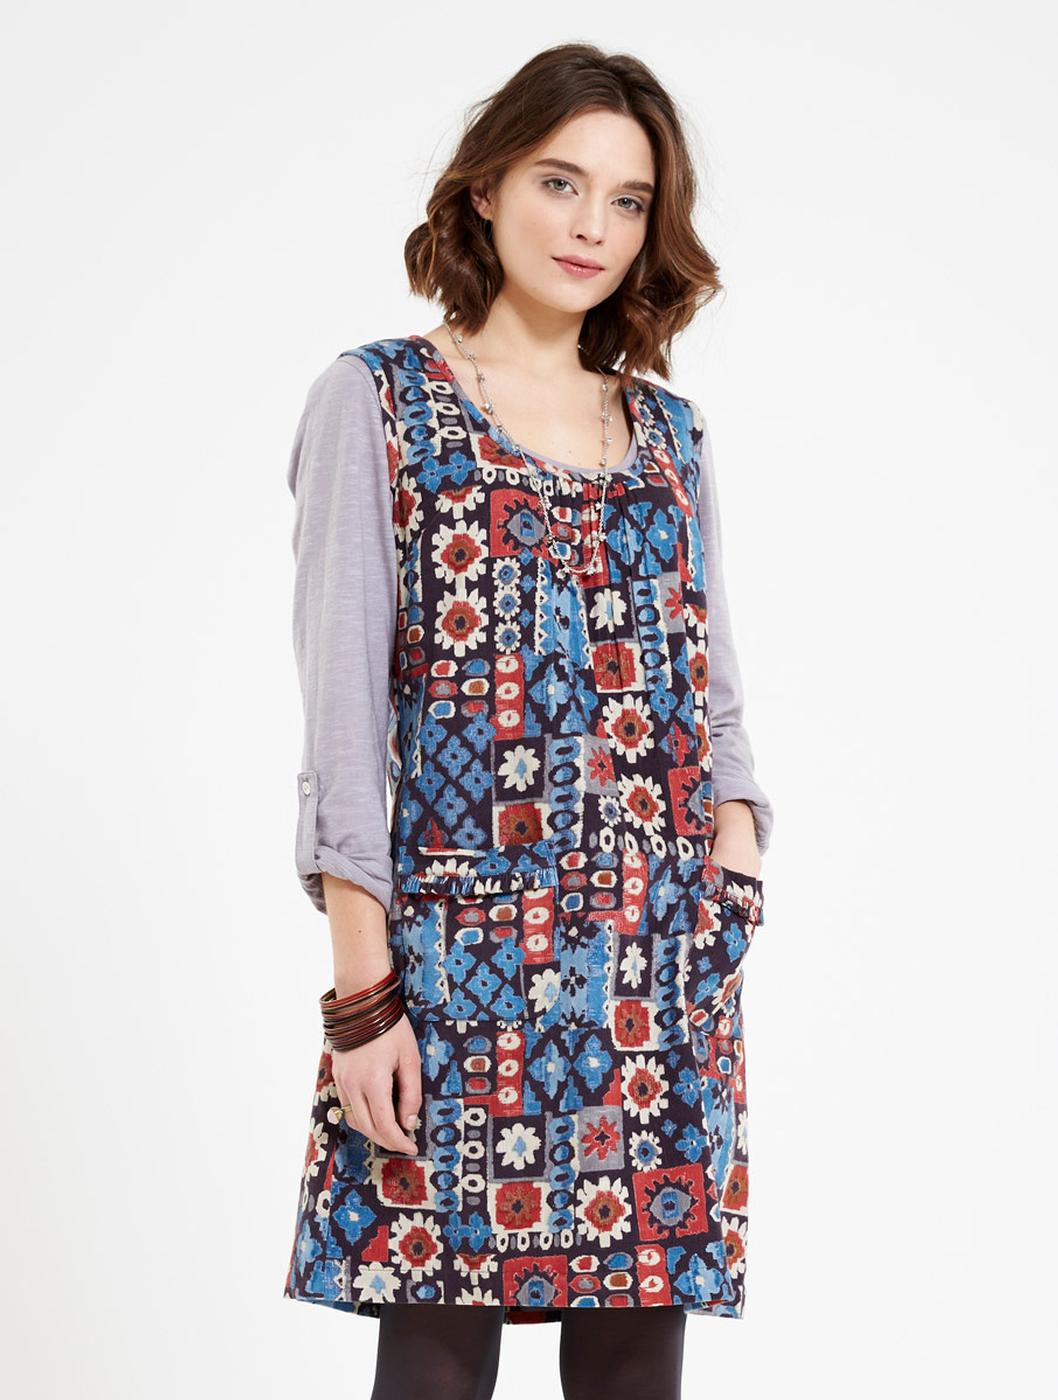 Rana NOMADS Cord Floral Mosaic Shift Dress